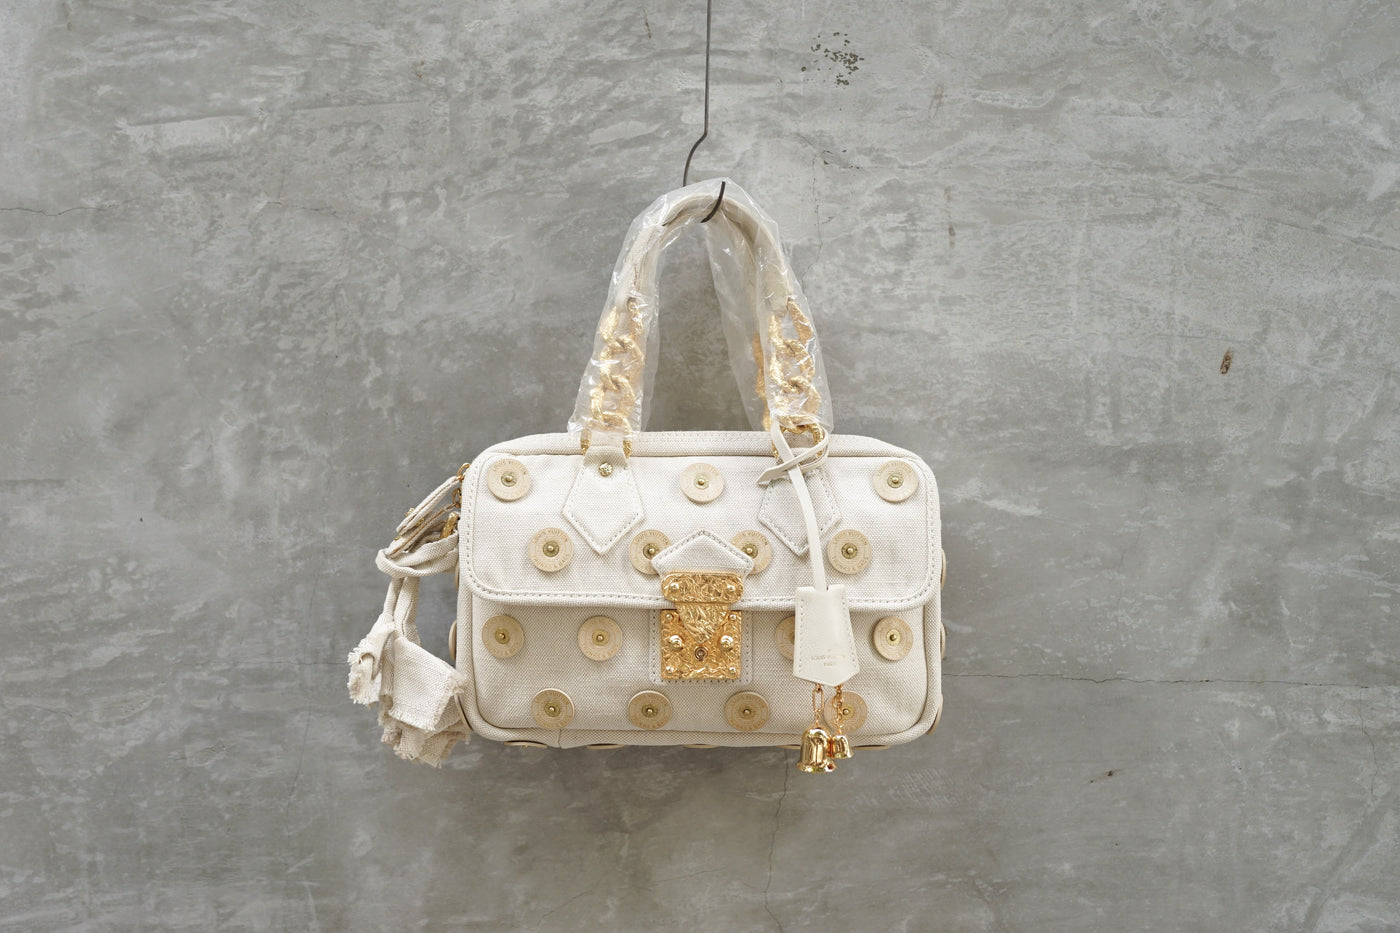 Louis Vuitton SS07 Limited Edition Polka Dots Panama Tinkerbell Handbag Beige Canvas